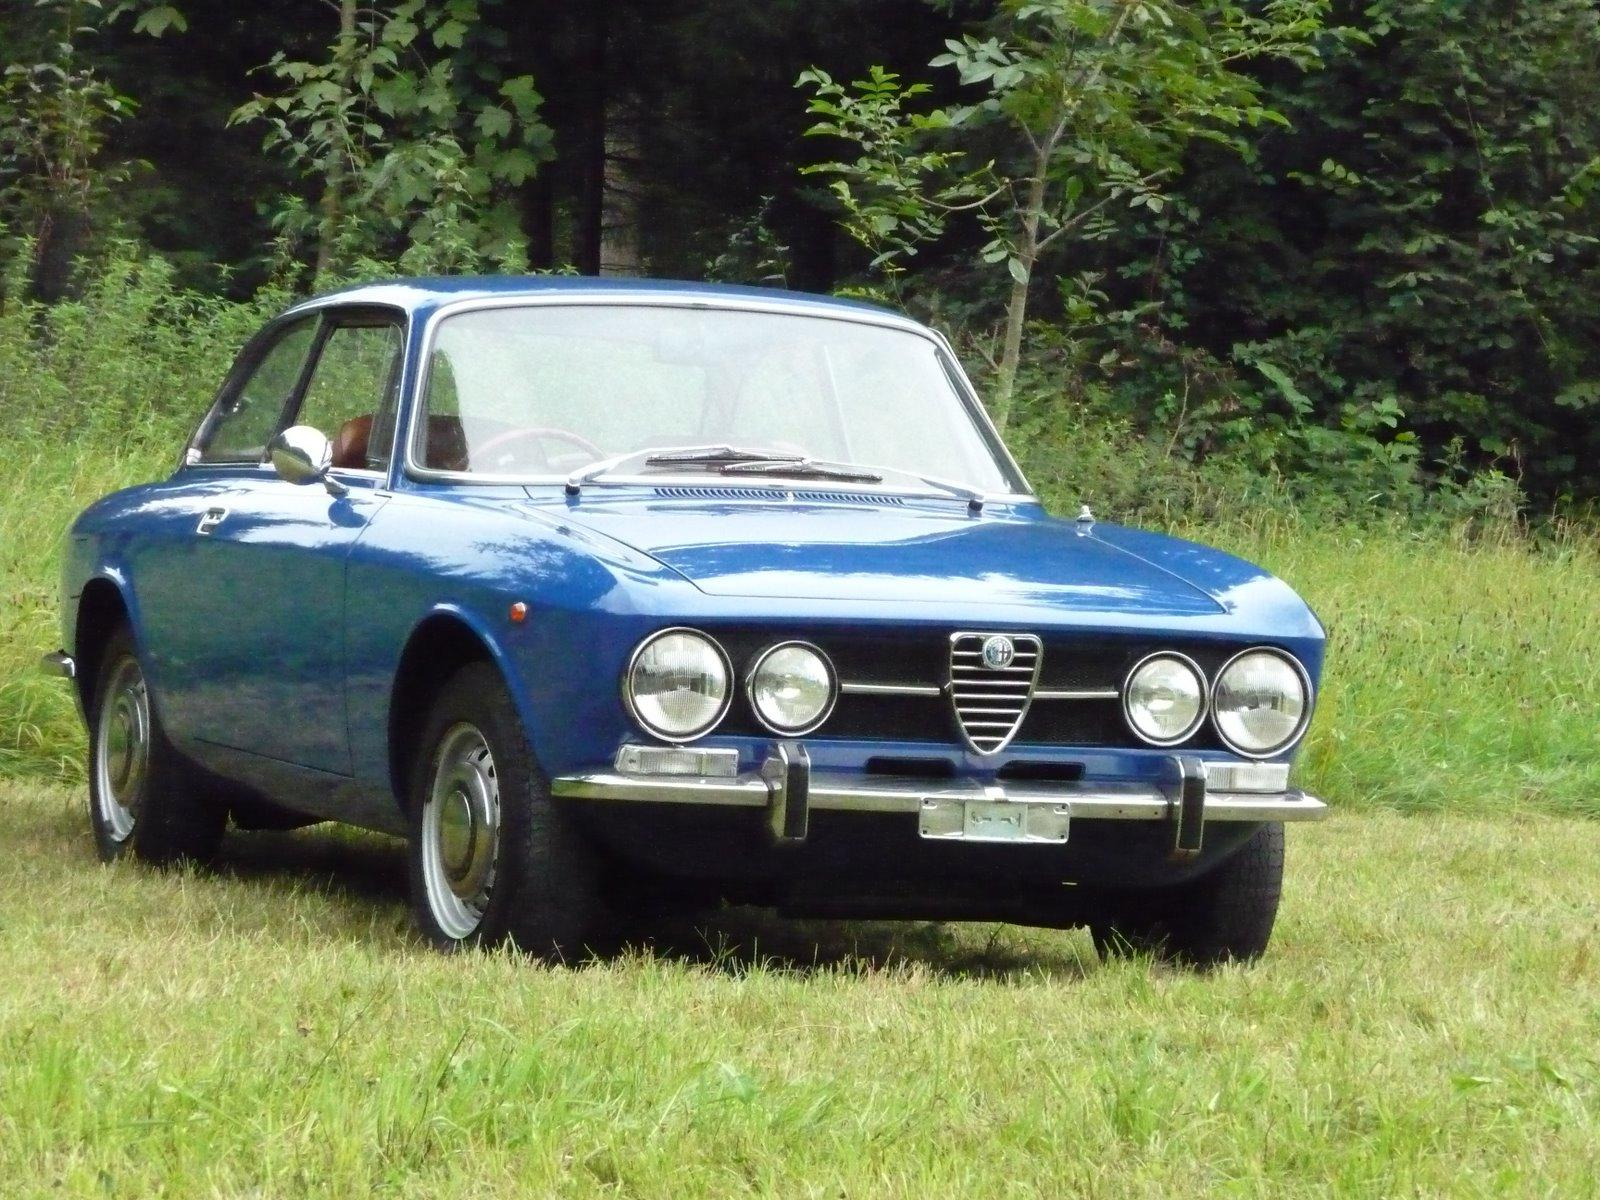 Alfa Romeo Gt Wiring Diagrams Diagram Schematics 156 Gtv6 Tropic Air List Of Schematic Class A Rv